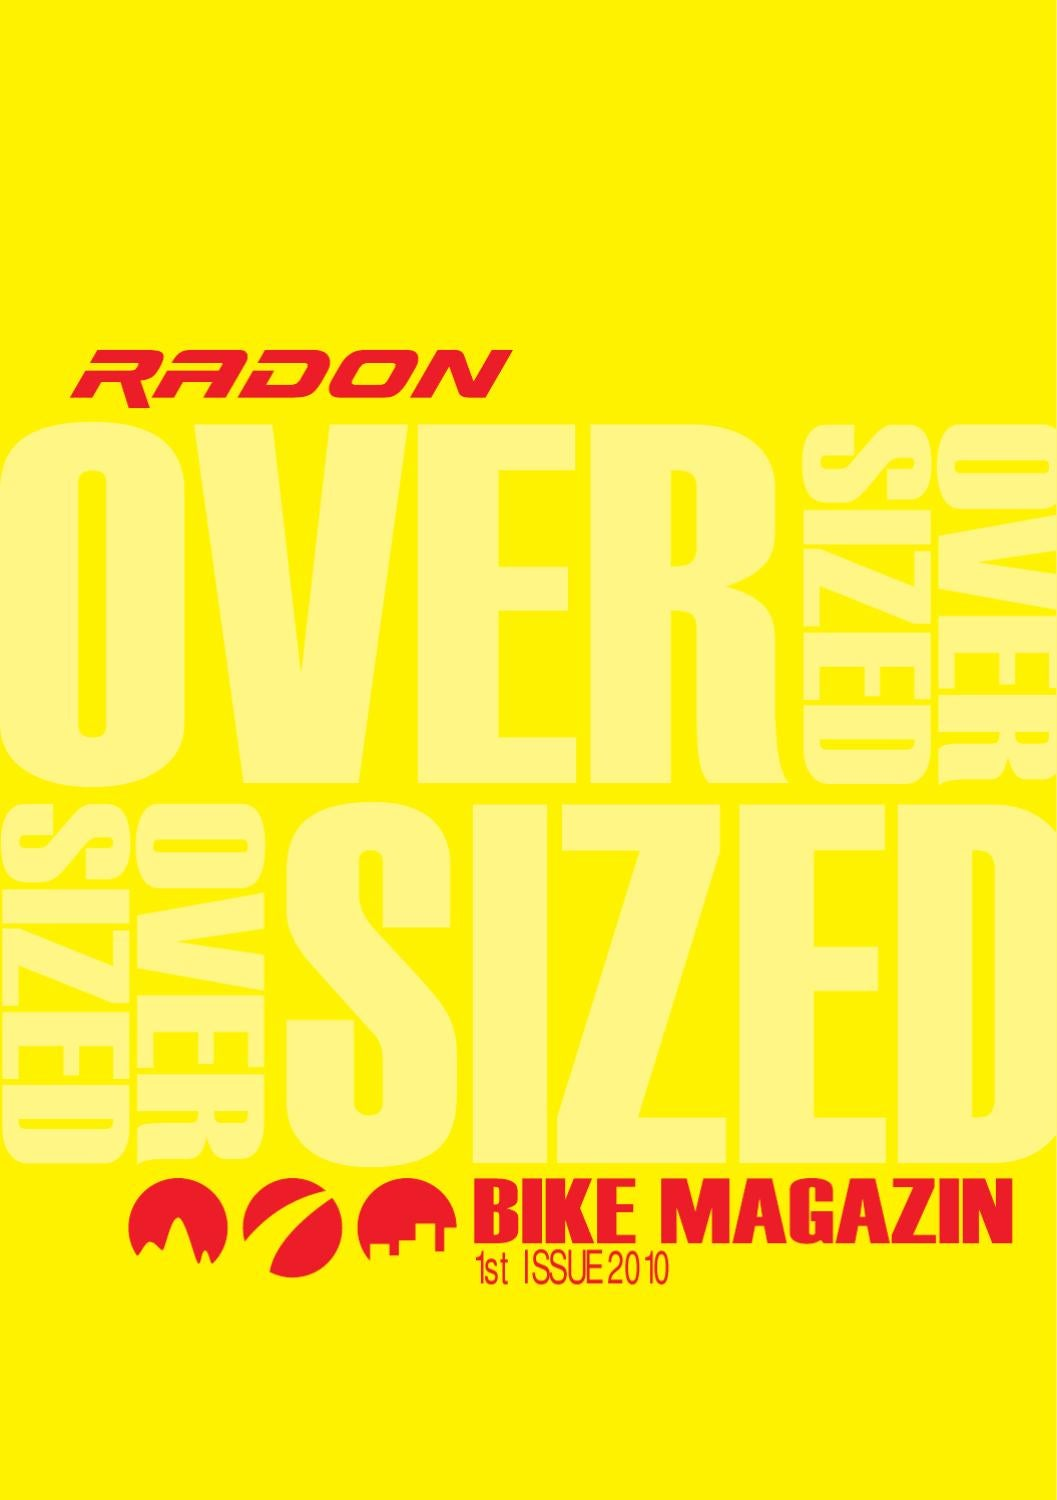 RADON OVERSIZE by Werbeagentur 4c media - issuu